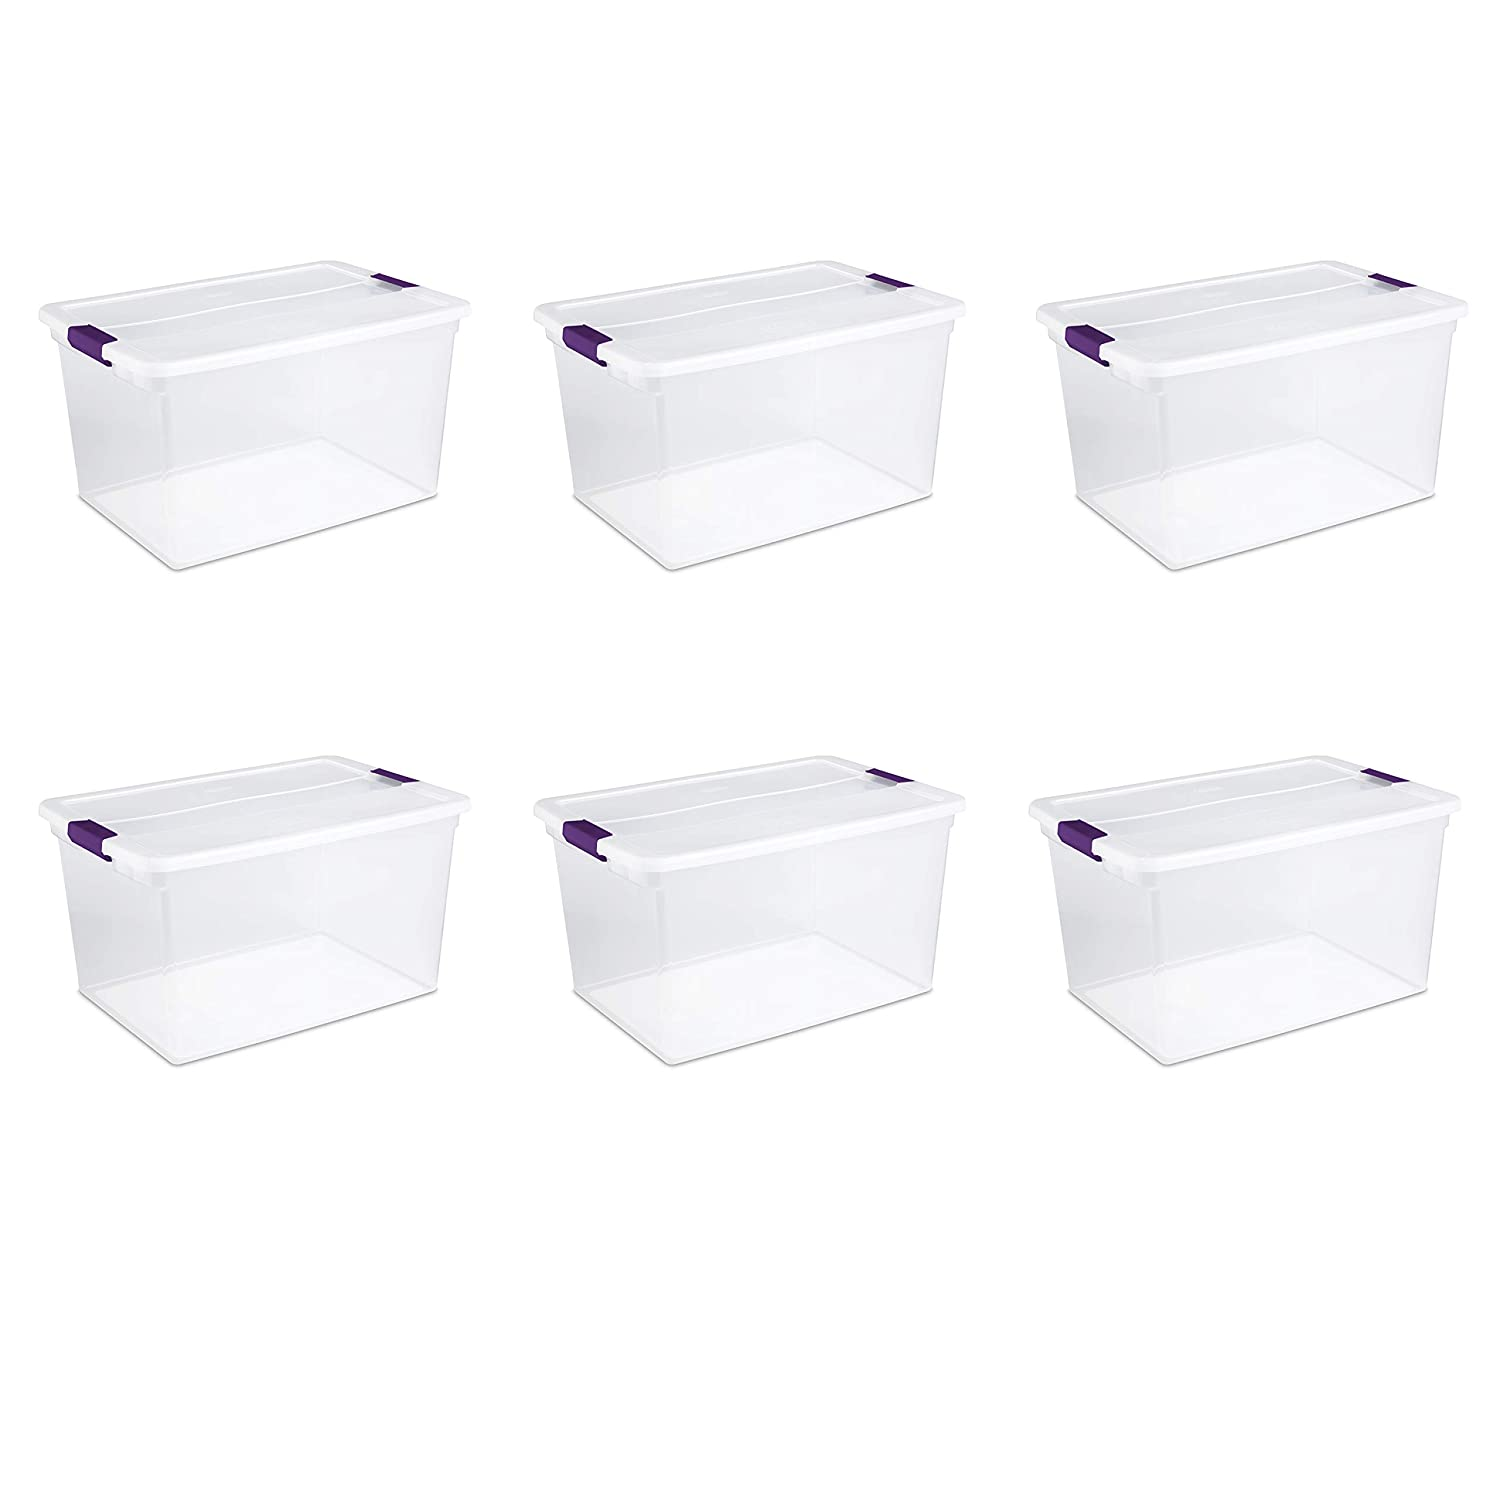 Sterilite 17571706 66 Quart/62 Liter ClearView Latch Box, Clear Lid & Base w/ Sweet Plum Latches, 6-Pack